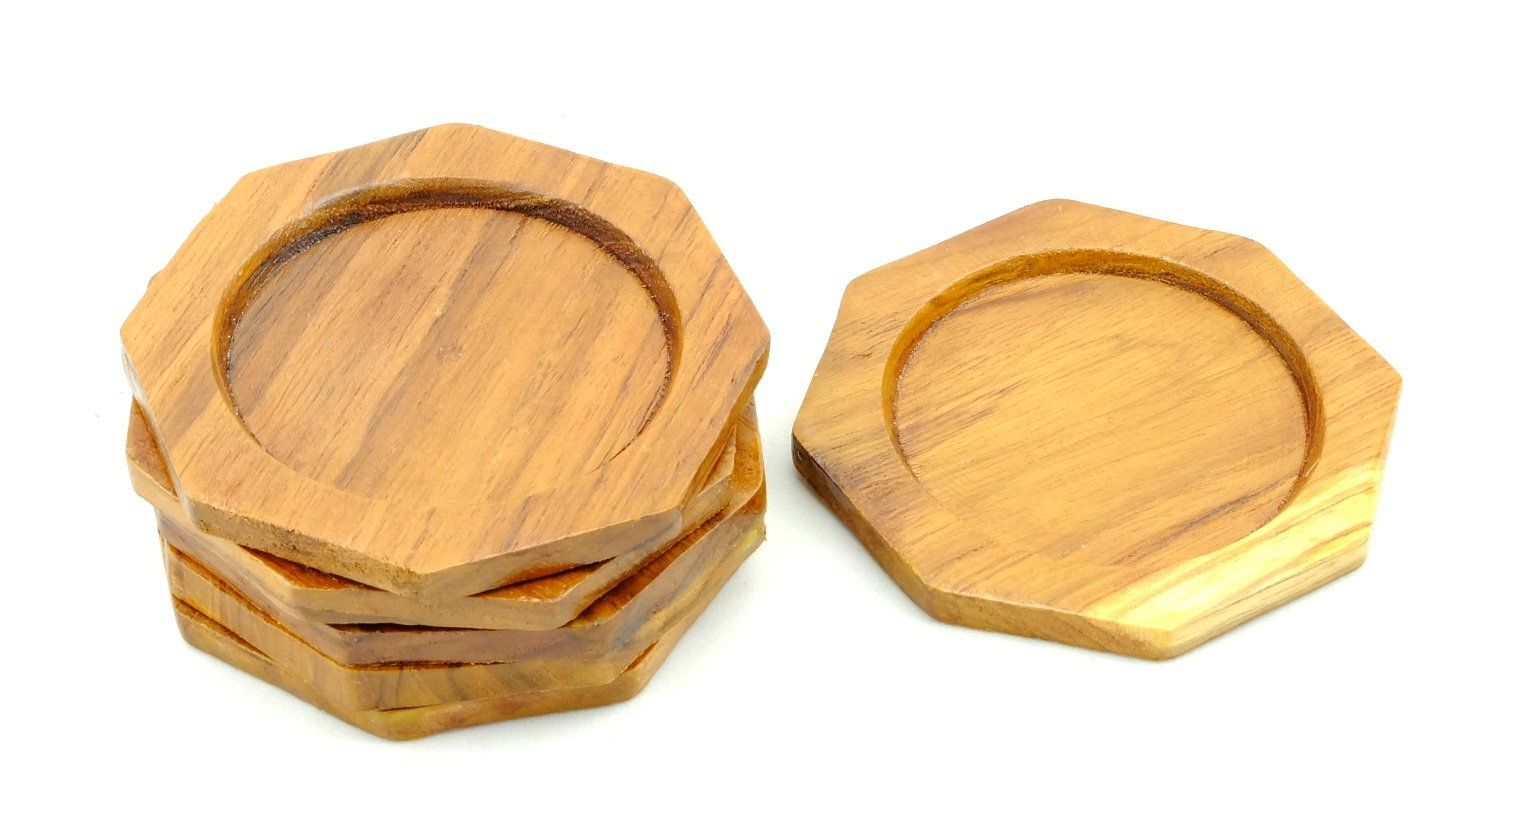 Set of Wood Beverage Coasters By Thai Style Coasters Suitable for Wine Glasses, Beer Bottles, Whiskey Glasses and Any Hot and Cold Drinks. (wood C) by wood coasters